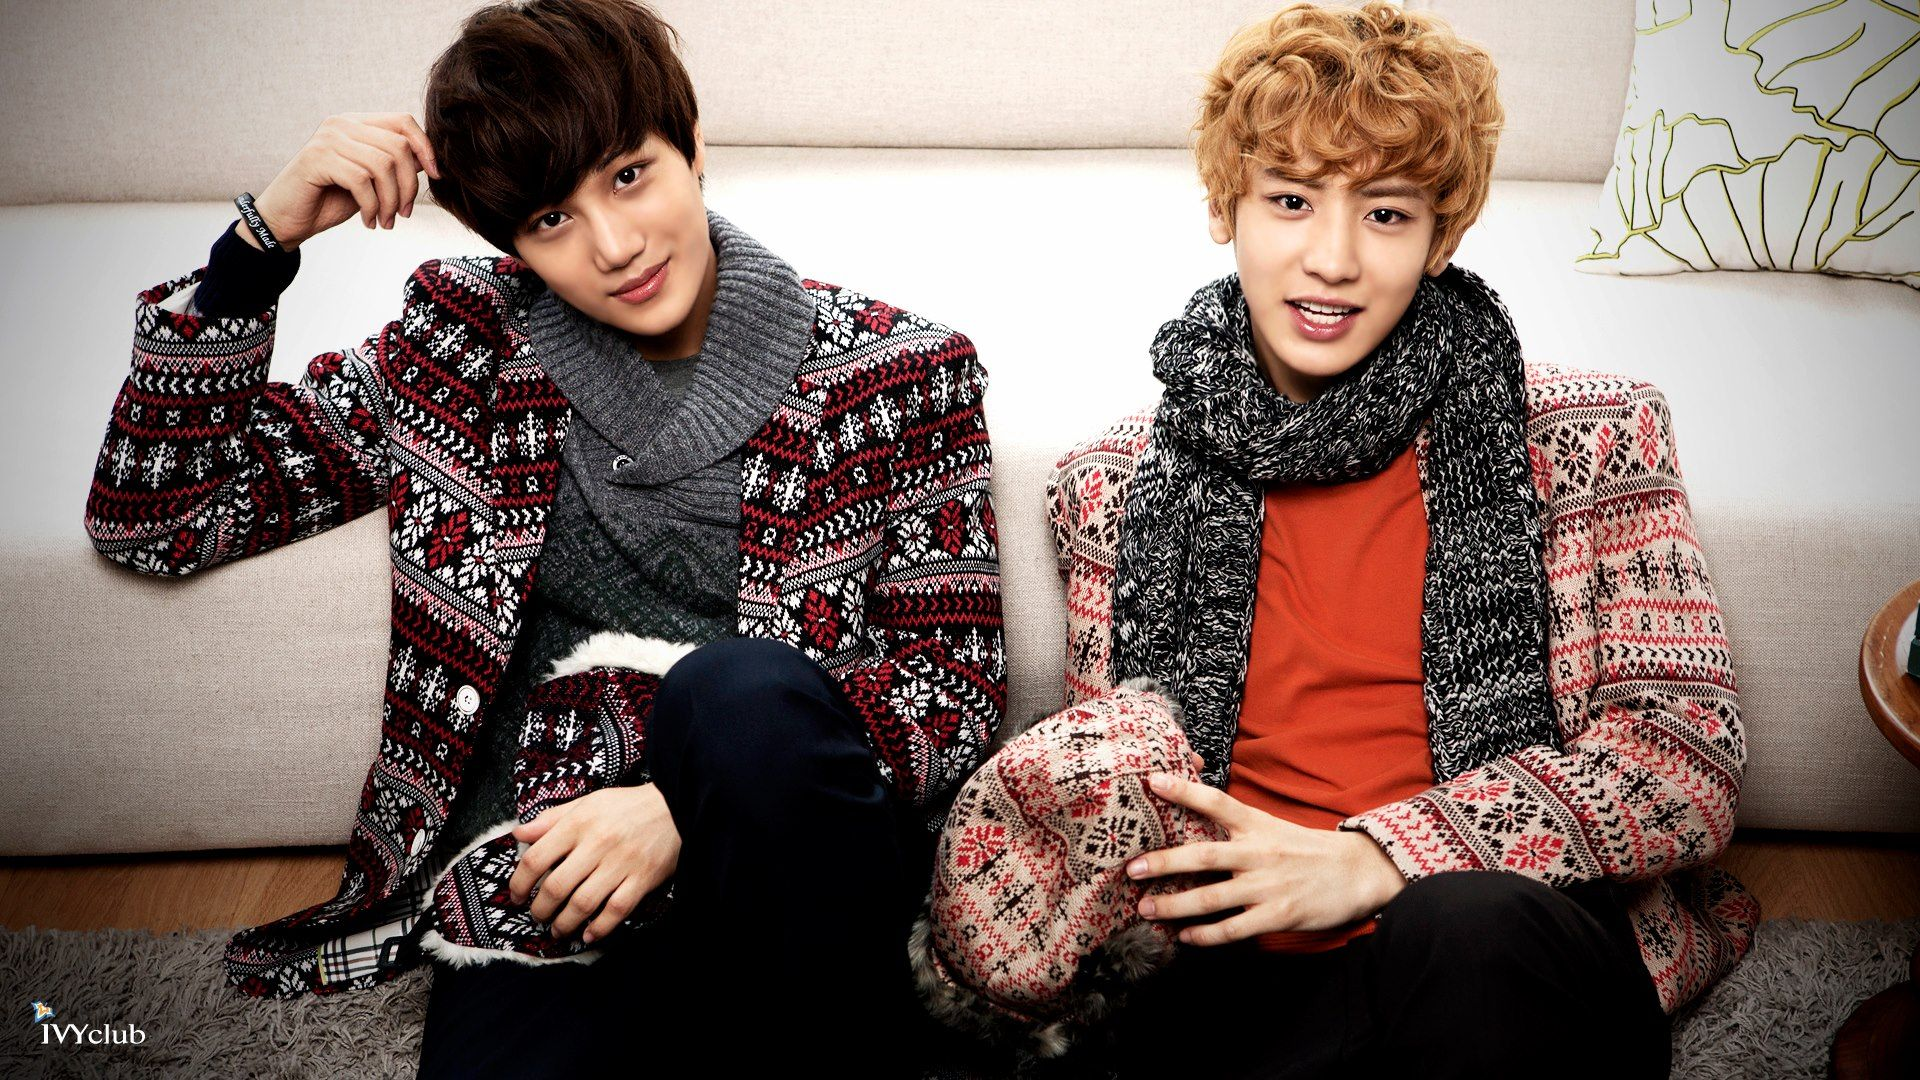 EXO TOWN: EXO-K Ivy Club Official Site Update: Kai and Chanyeol